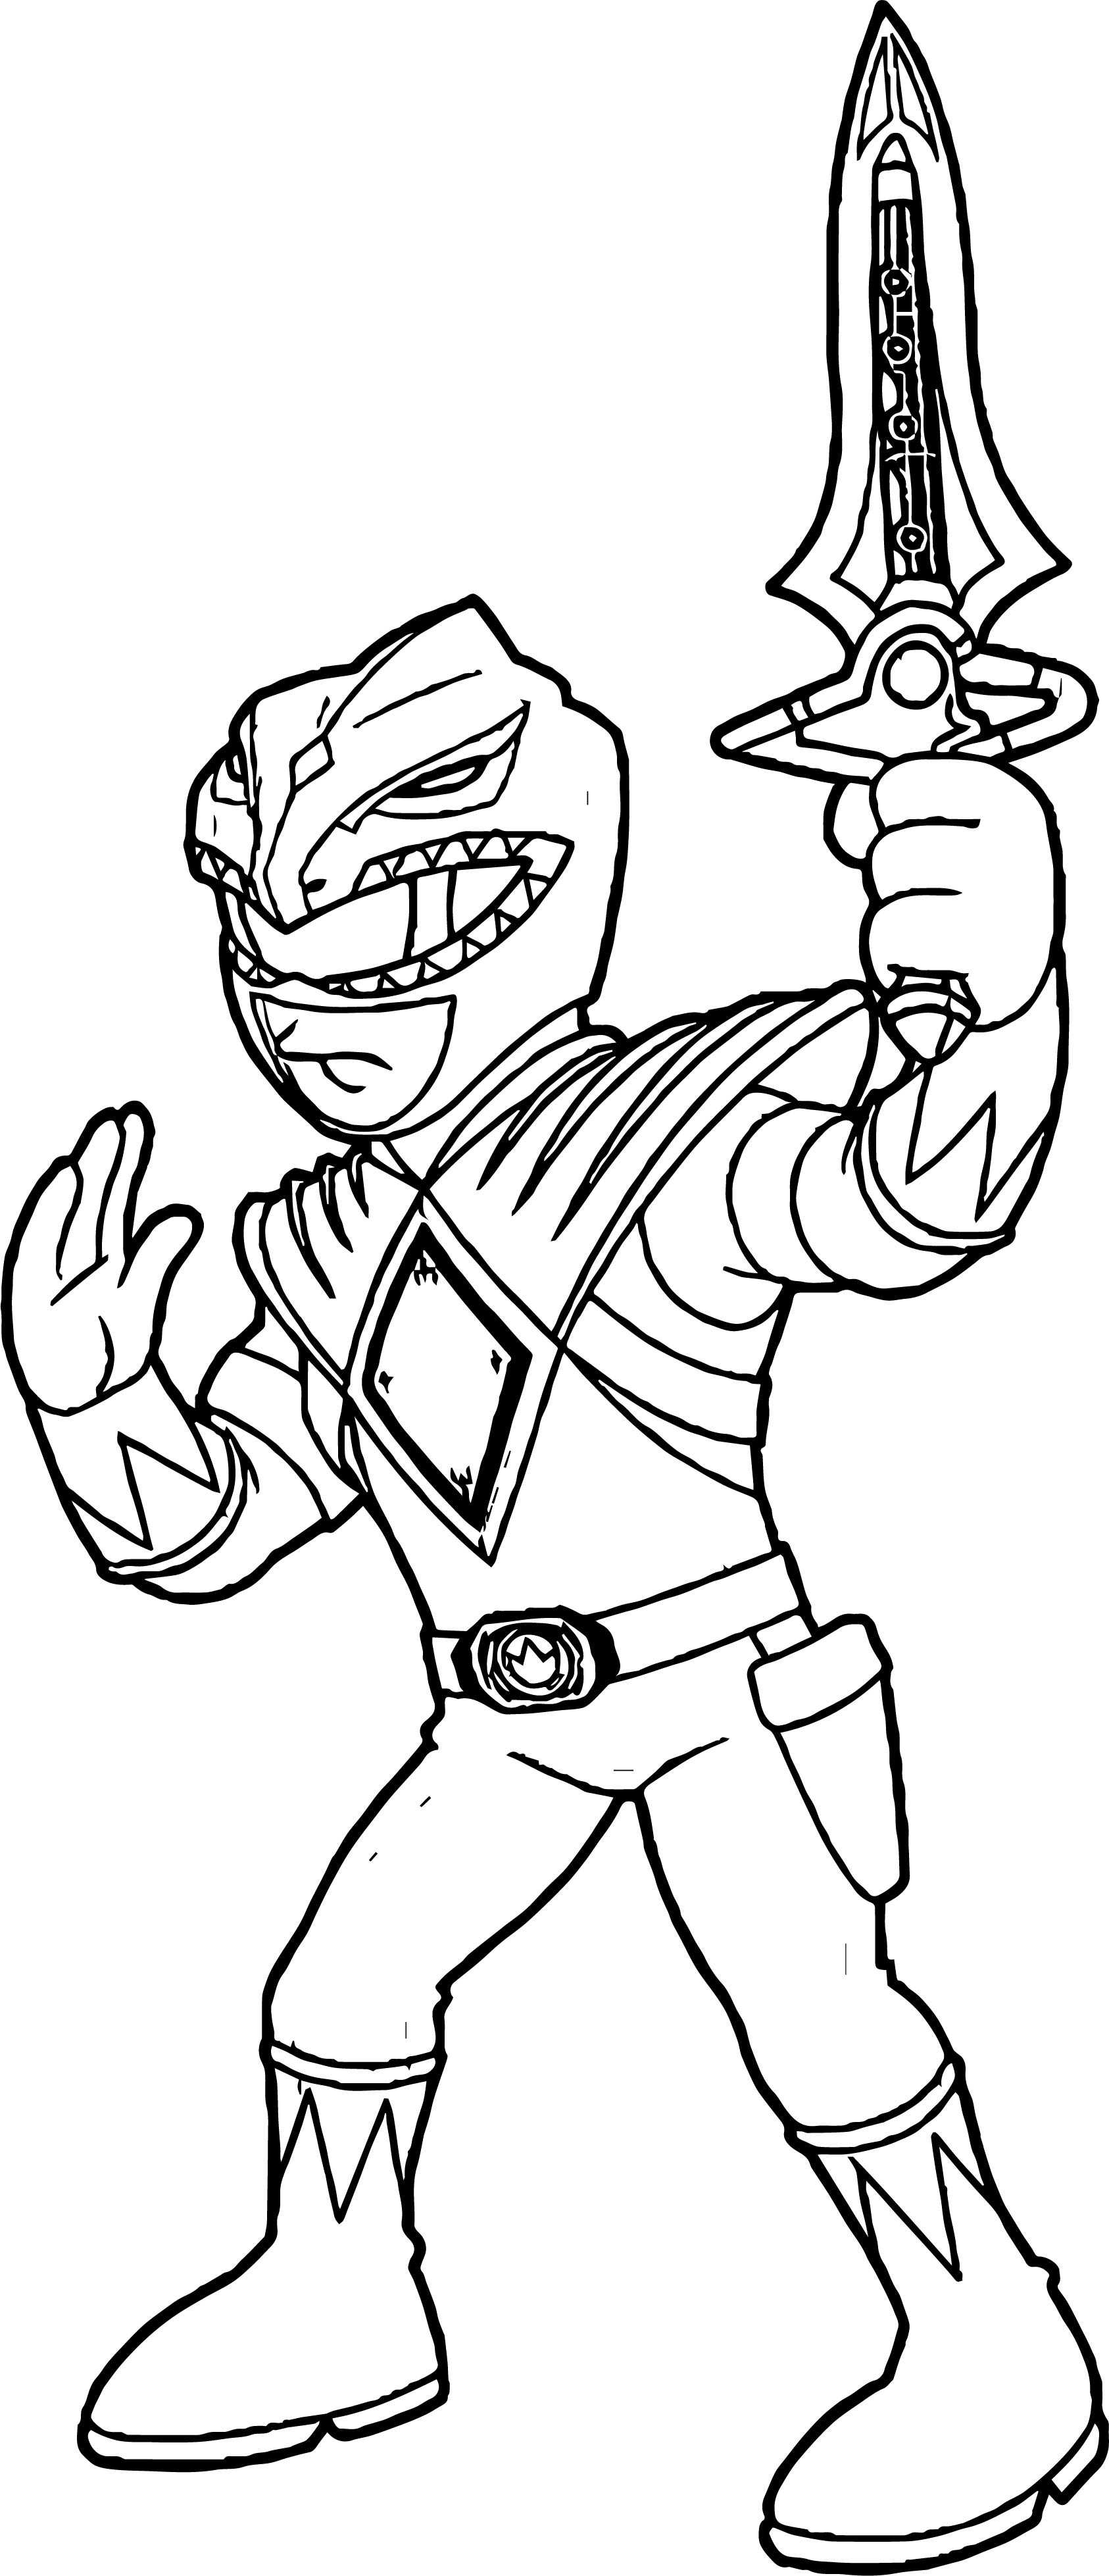 power rangers color pages power rangers ninja storm get ready coloring page pages color rangers power